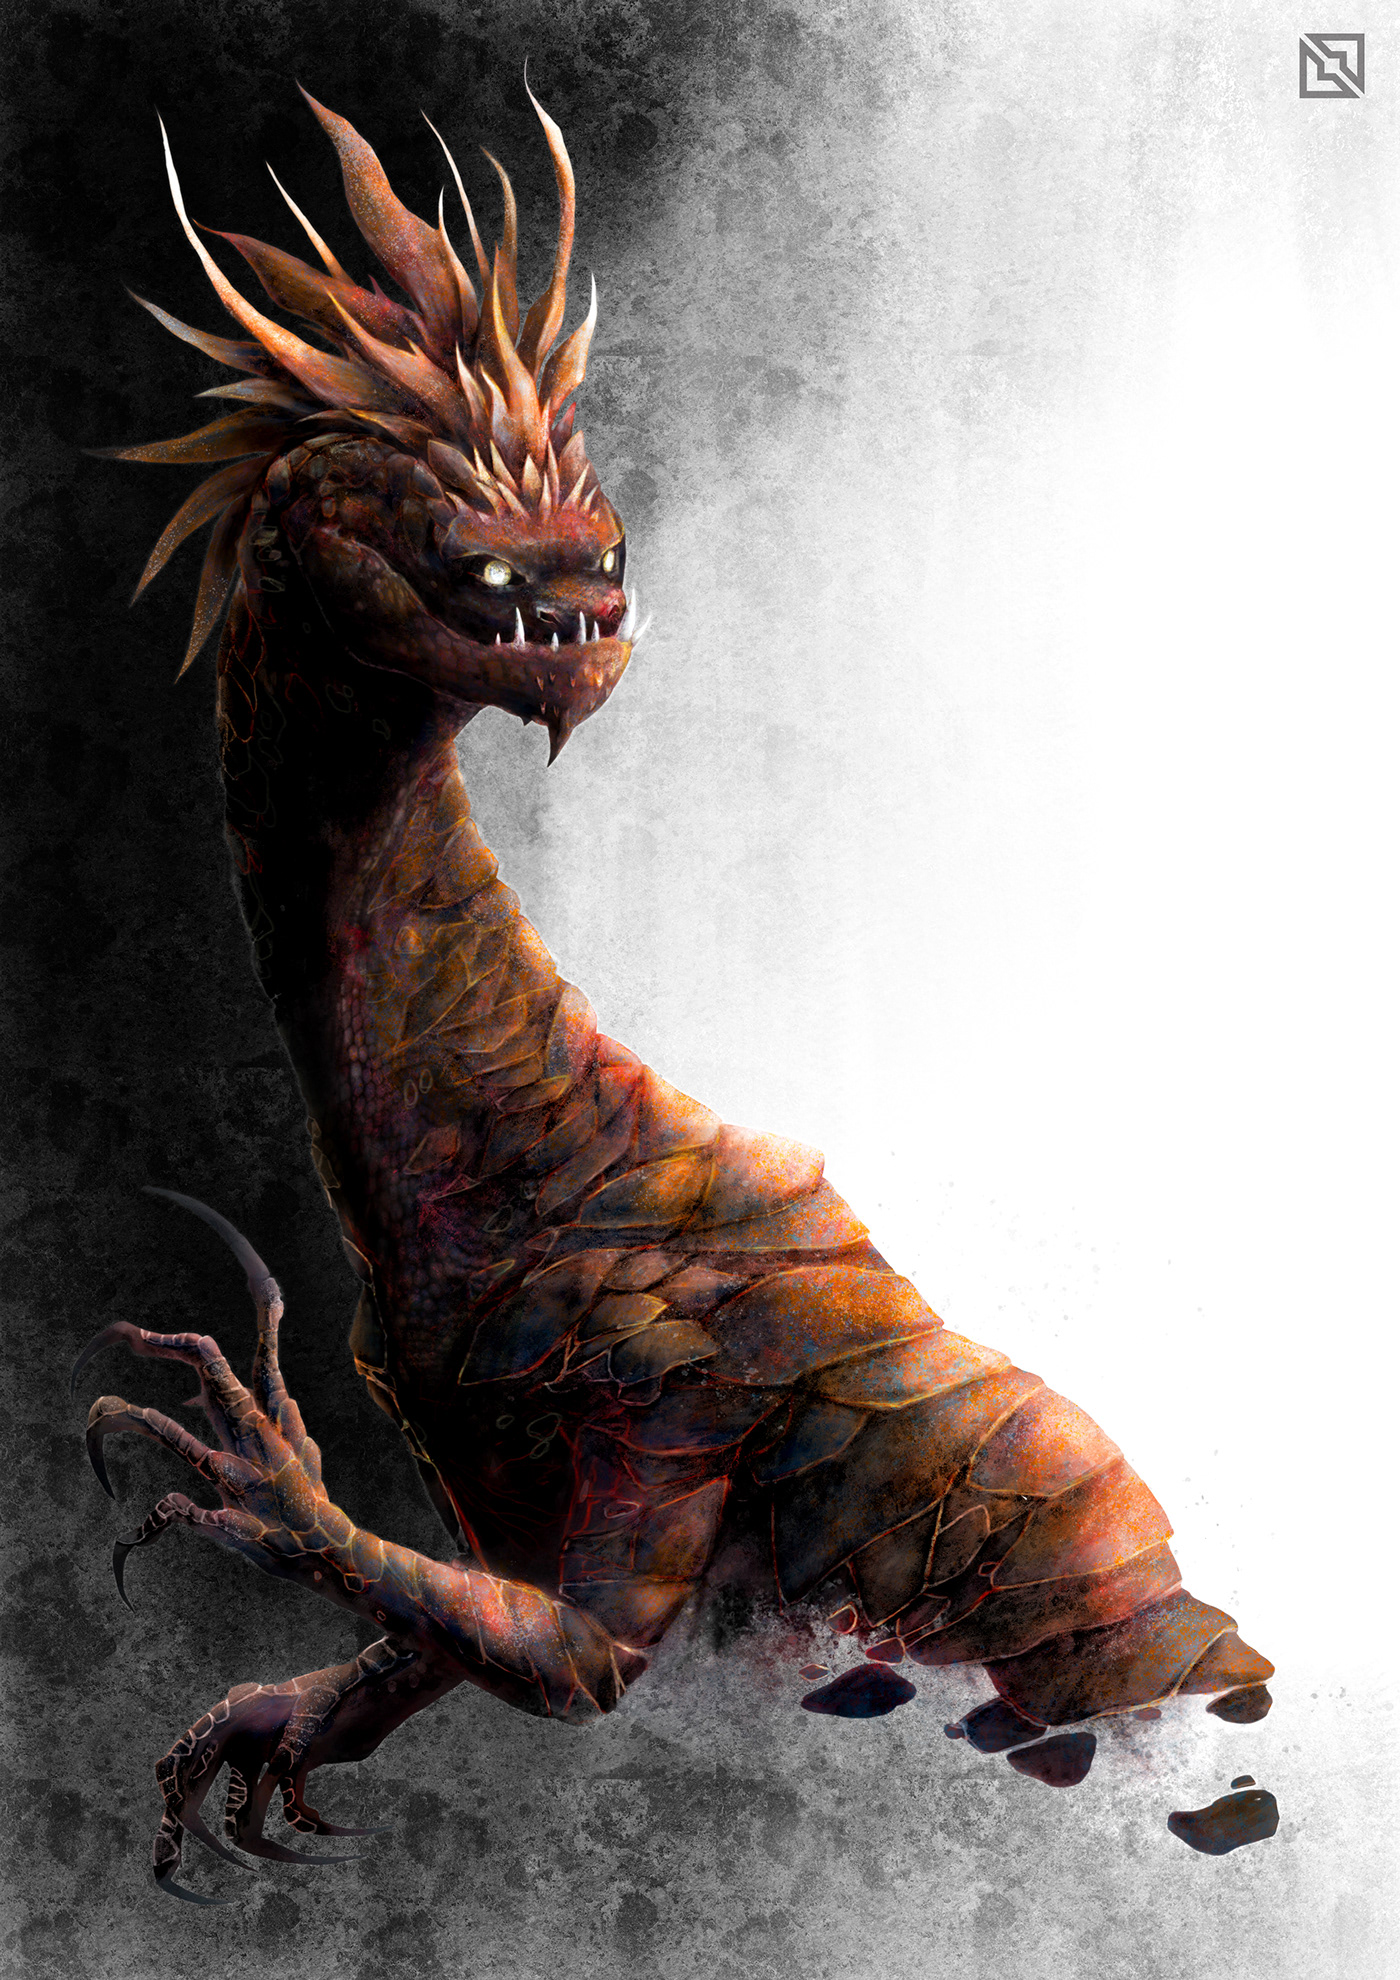 monster creature Character book illustration Games concept art